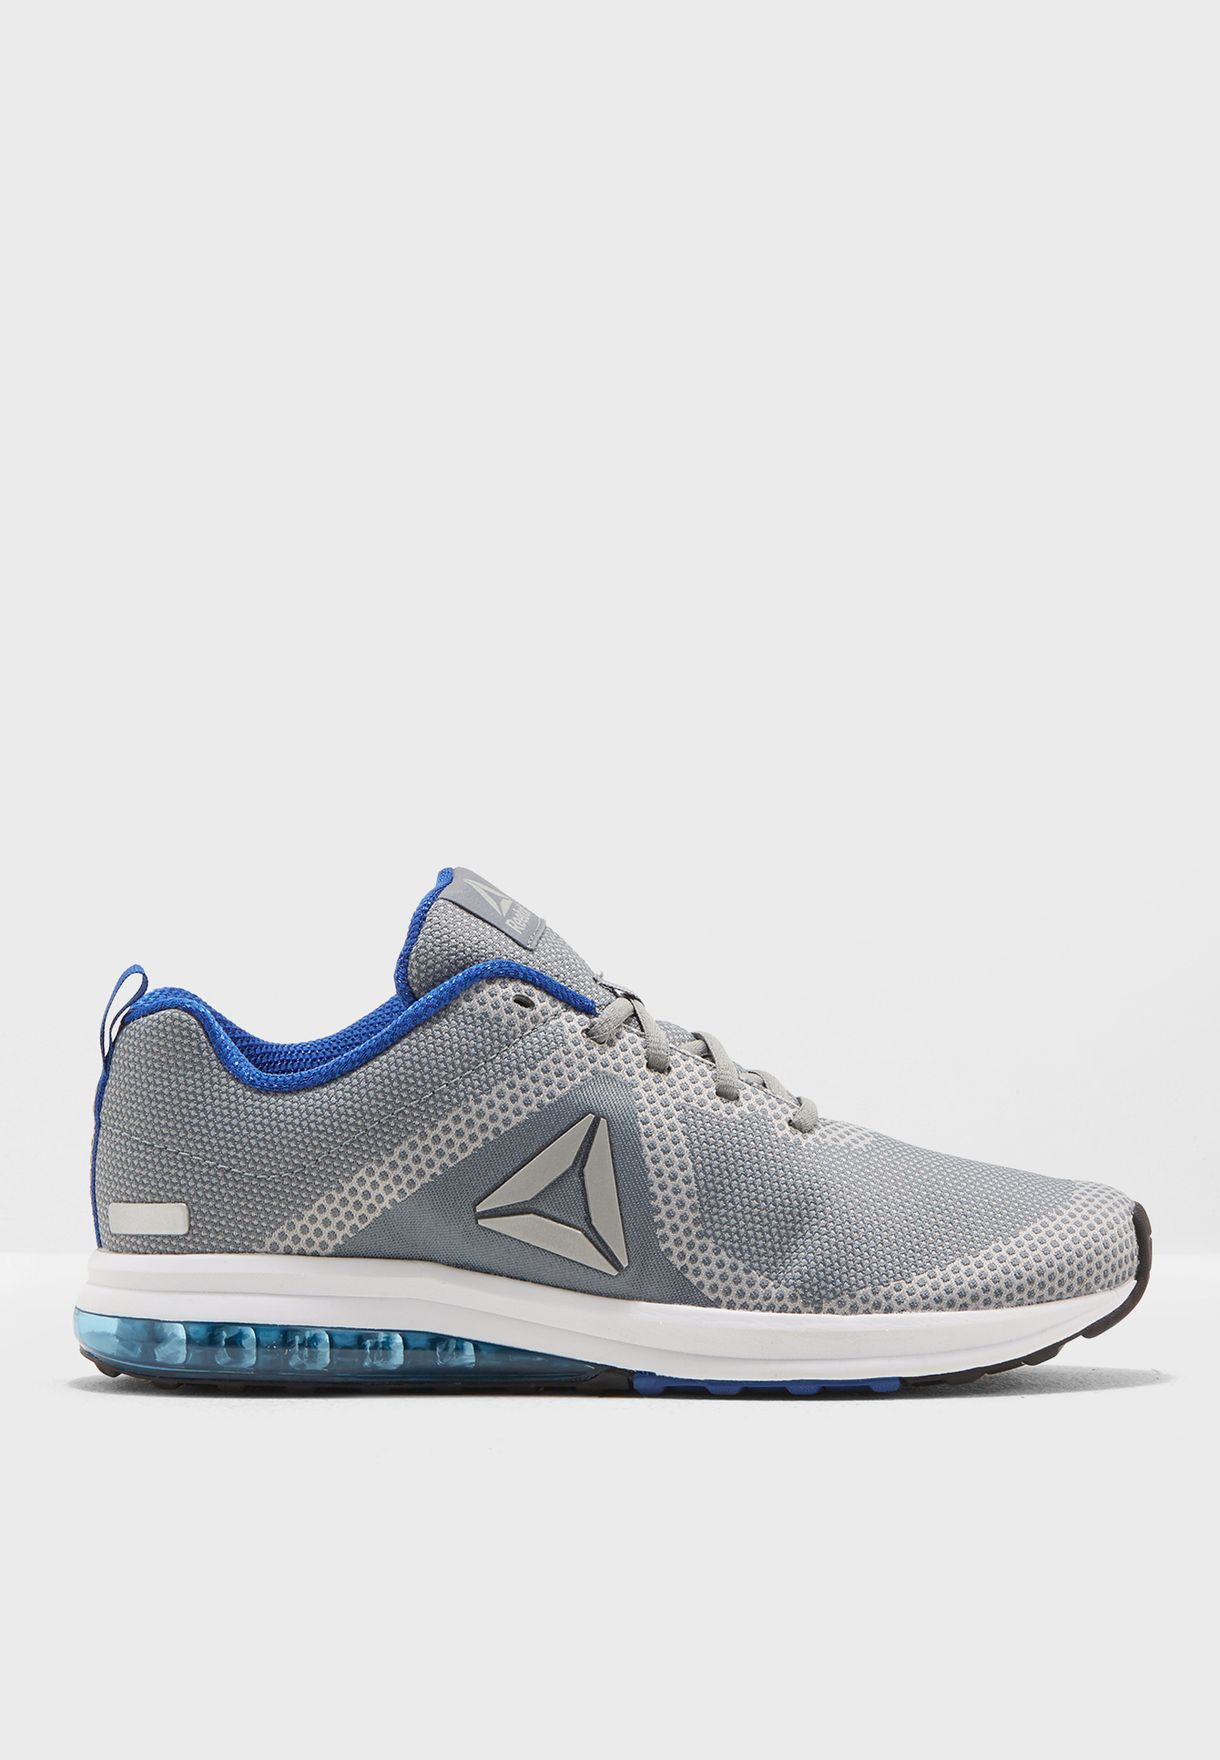 Shop Reebok grey Jet Dashride 6.0 CM9000 for Men in UAE - RE019SH26KKJ 5a3249b4d